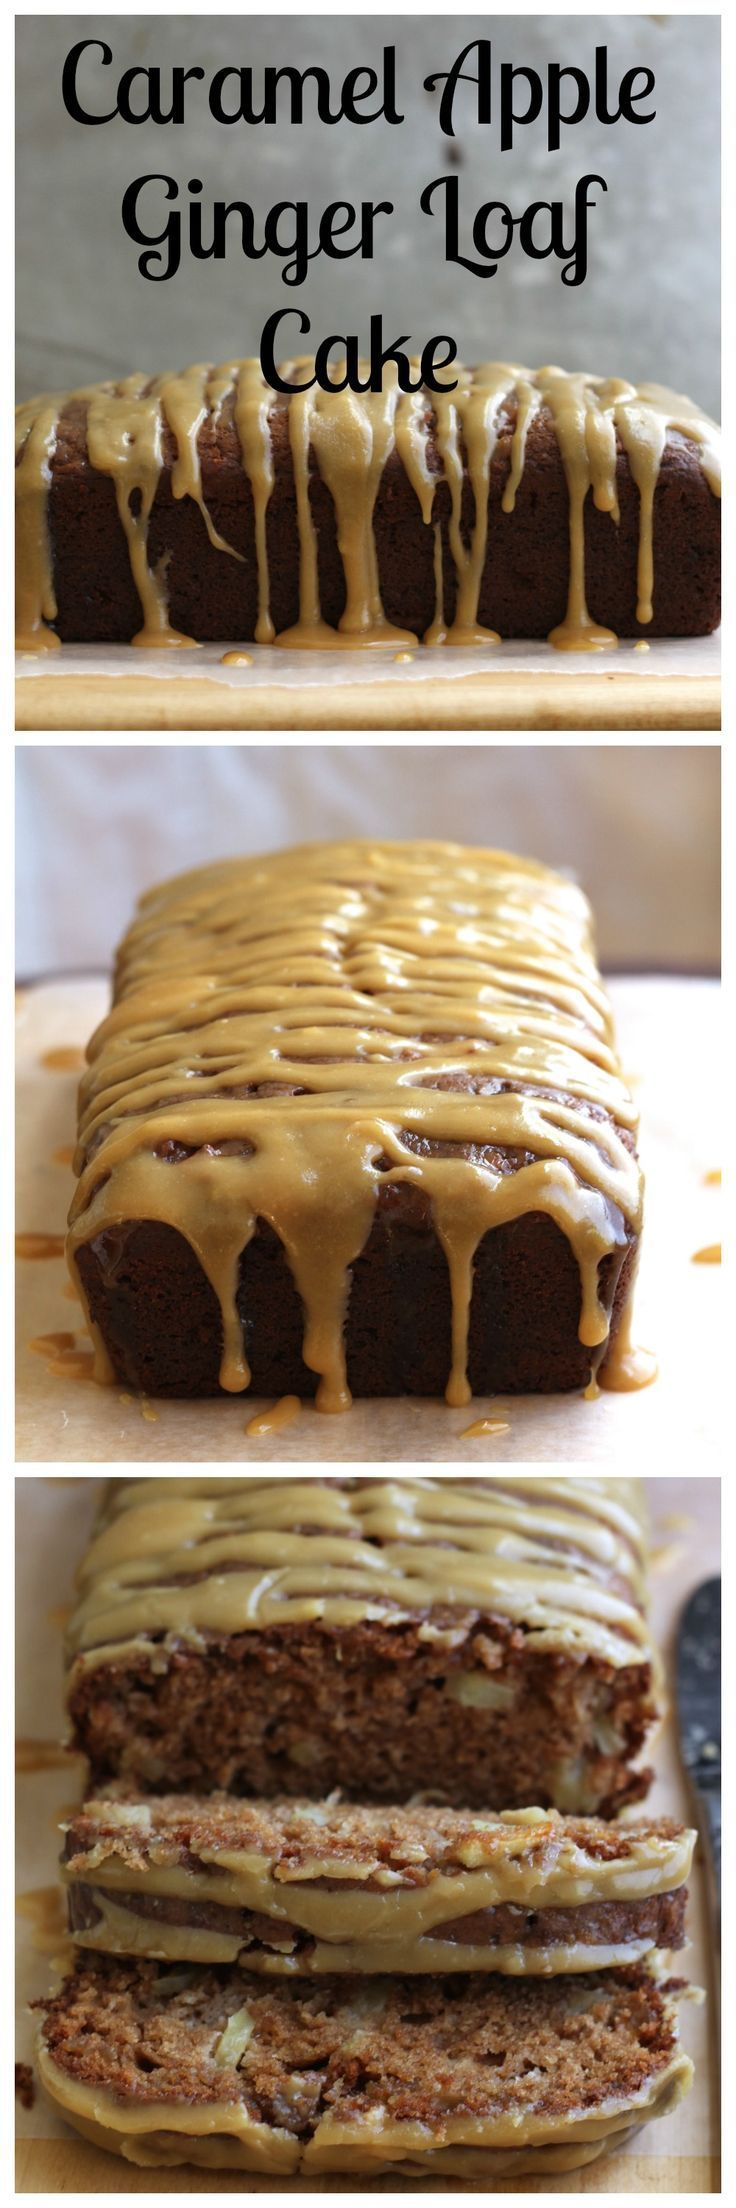 Caramel Apple Ginger Loaf Cake is especially nice to gift to friends around the holidays! {Brittany's Pantry}